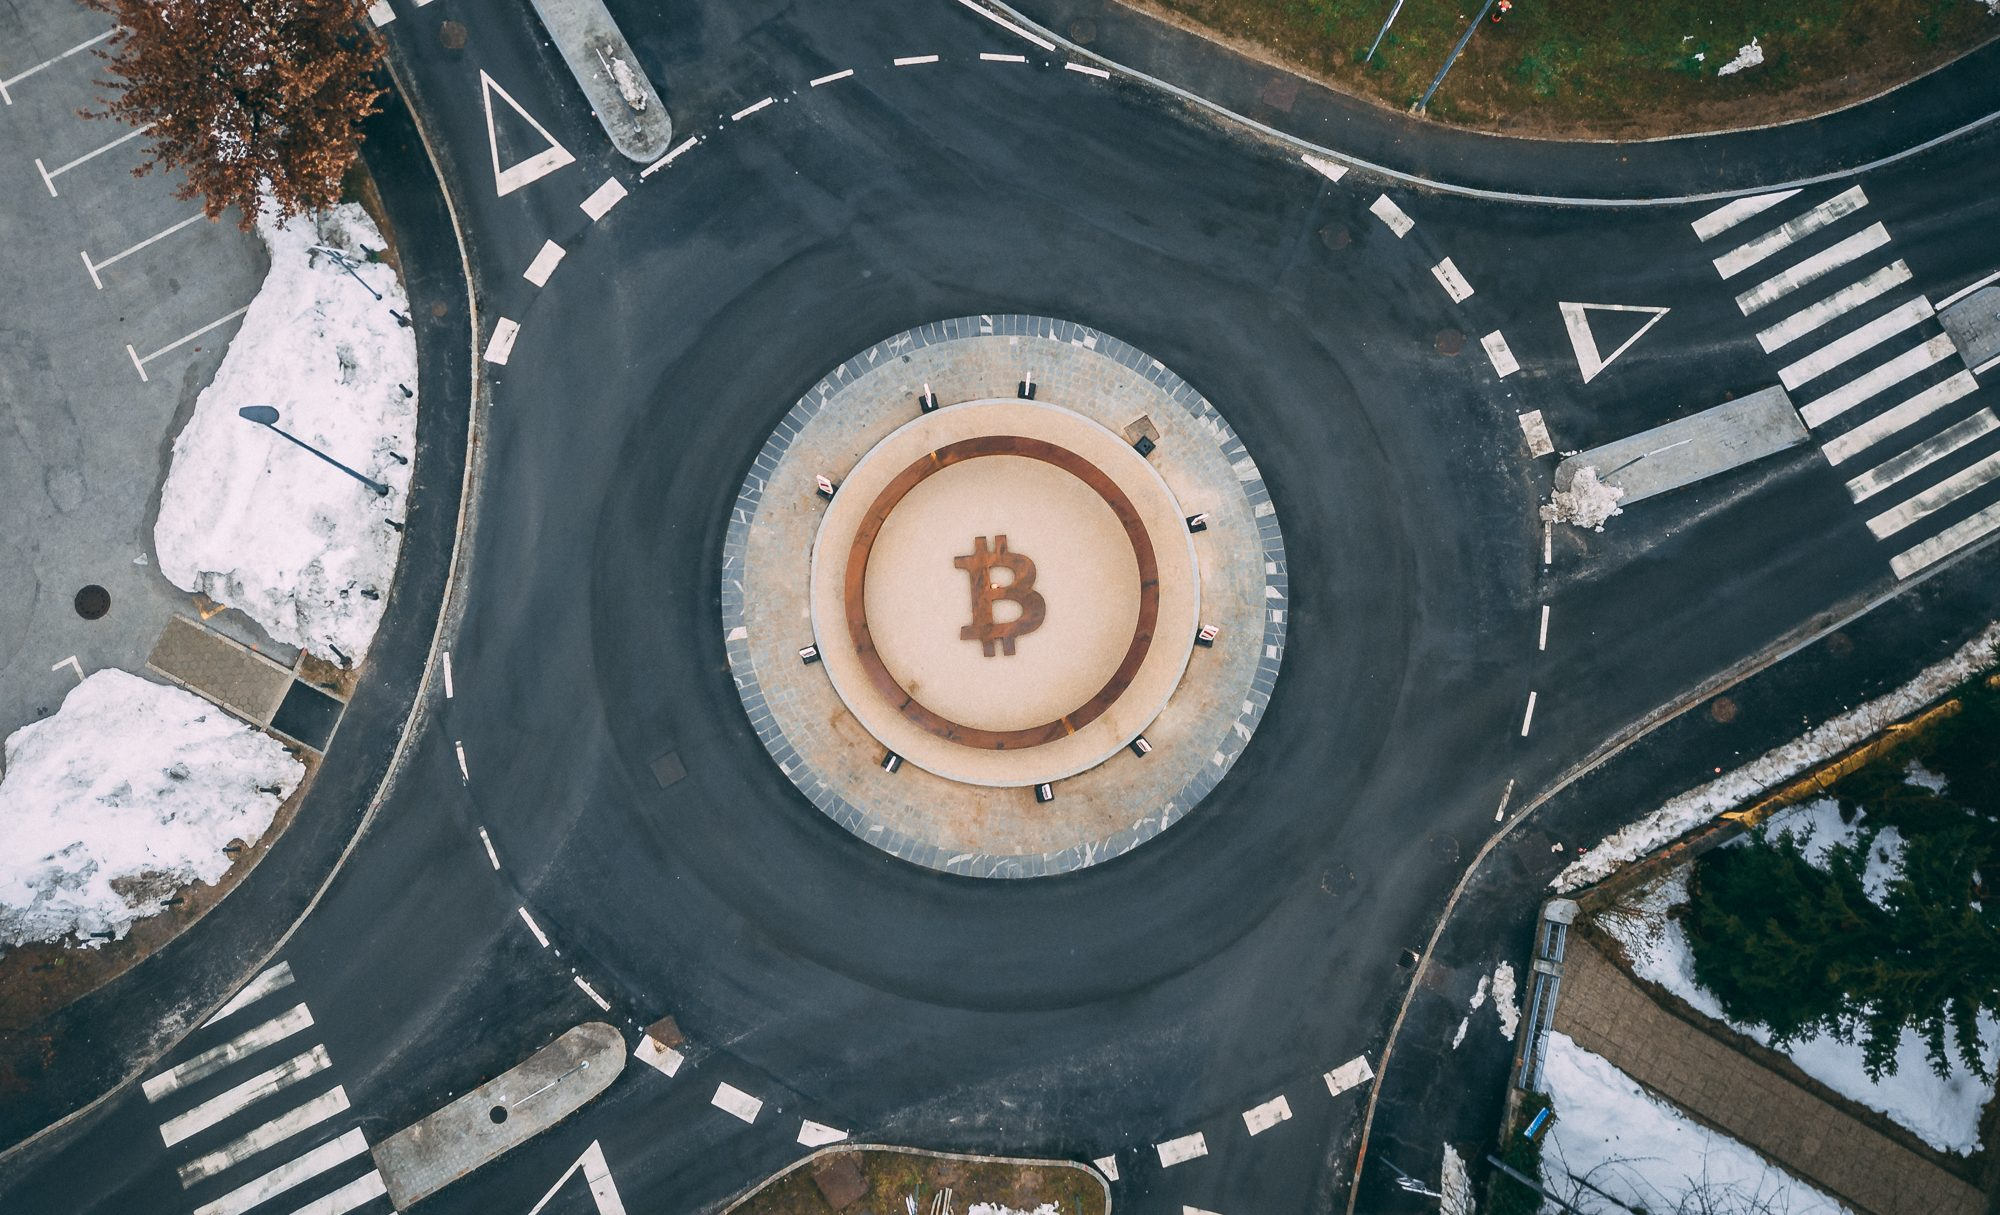 Bitcoin sign / statue at the roundabout in Kranj (Slovenia, Euro